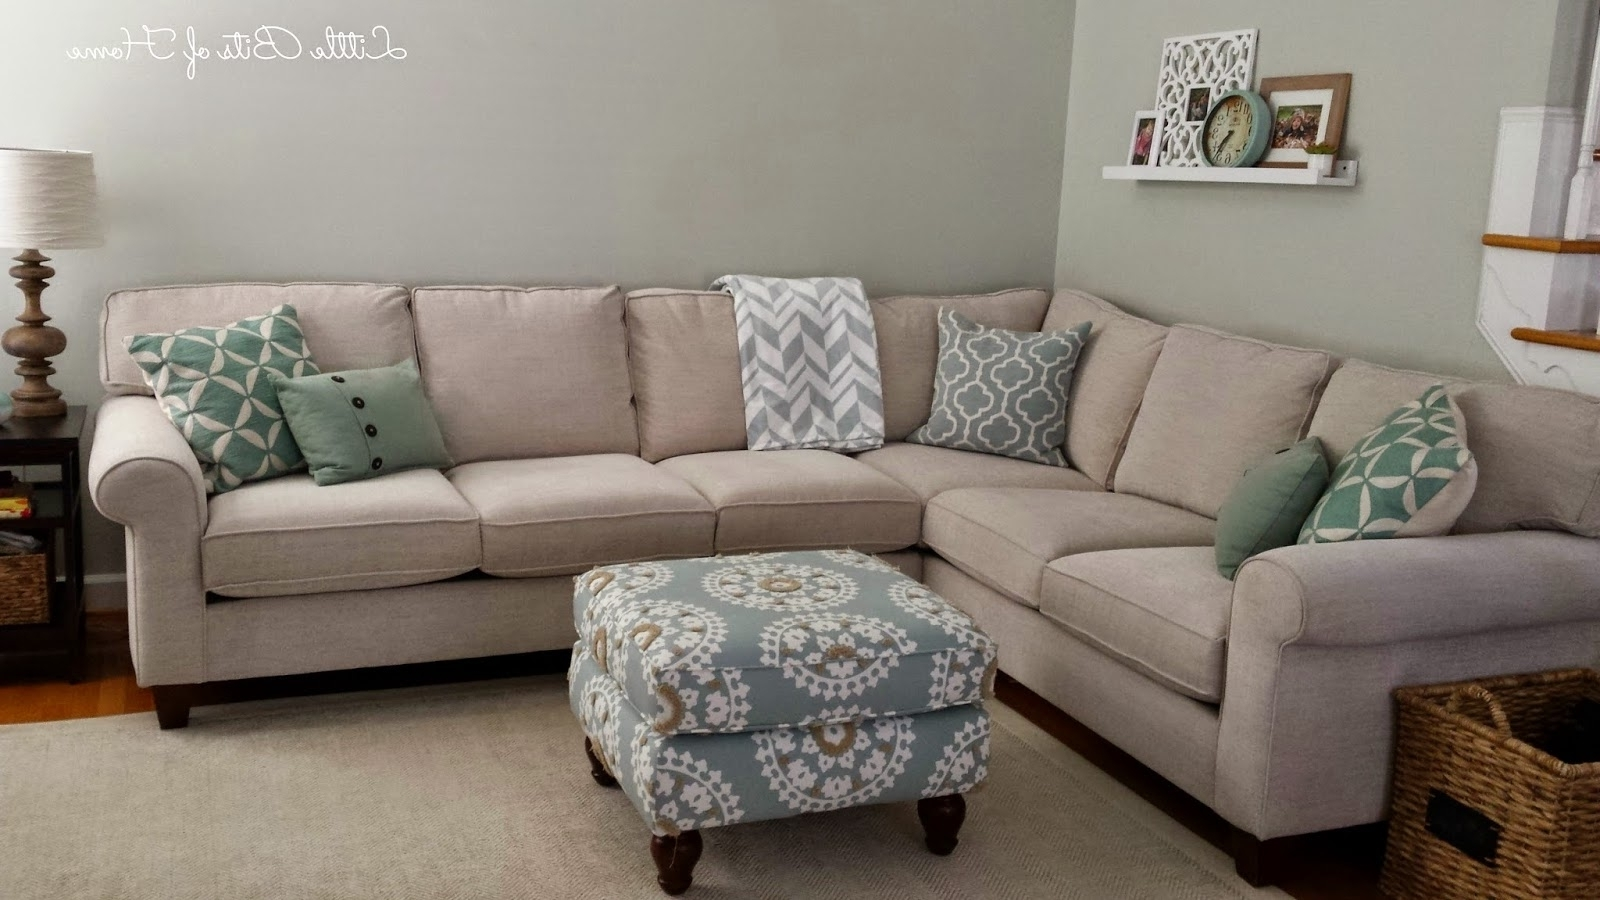 Famous Small Sectional Sofa Tulsa • Sectional Sofa Inside Tulsa Sectional Sofas (View 4 of 20)